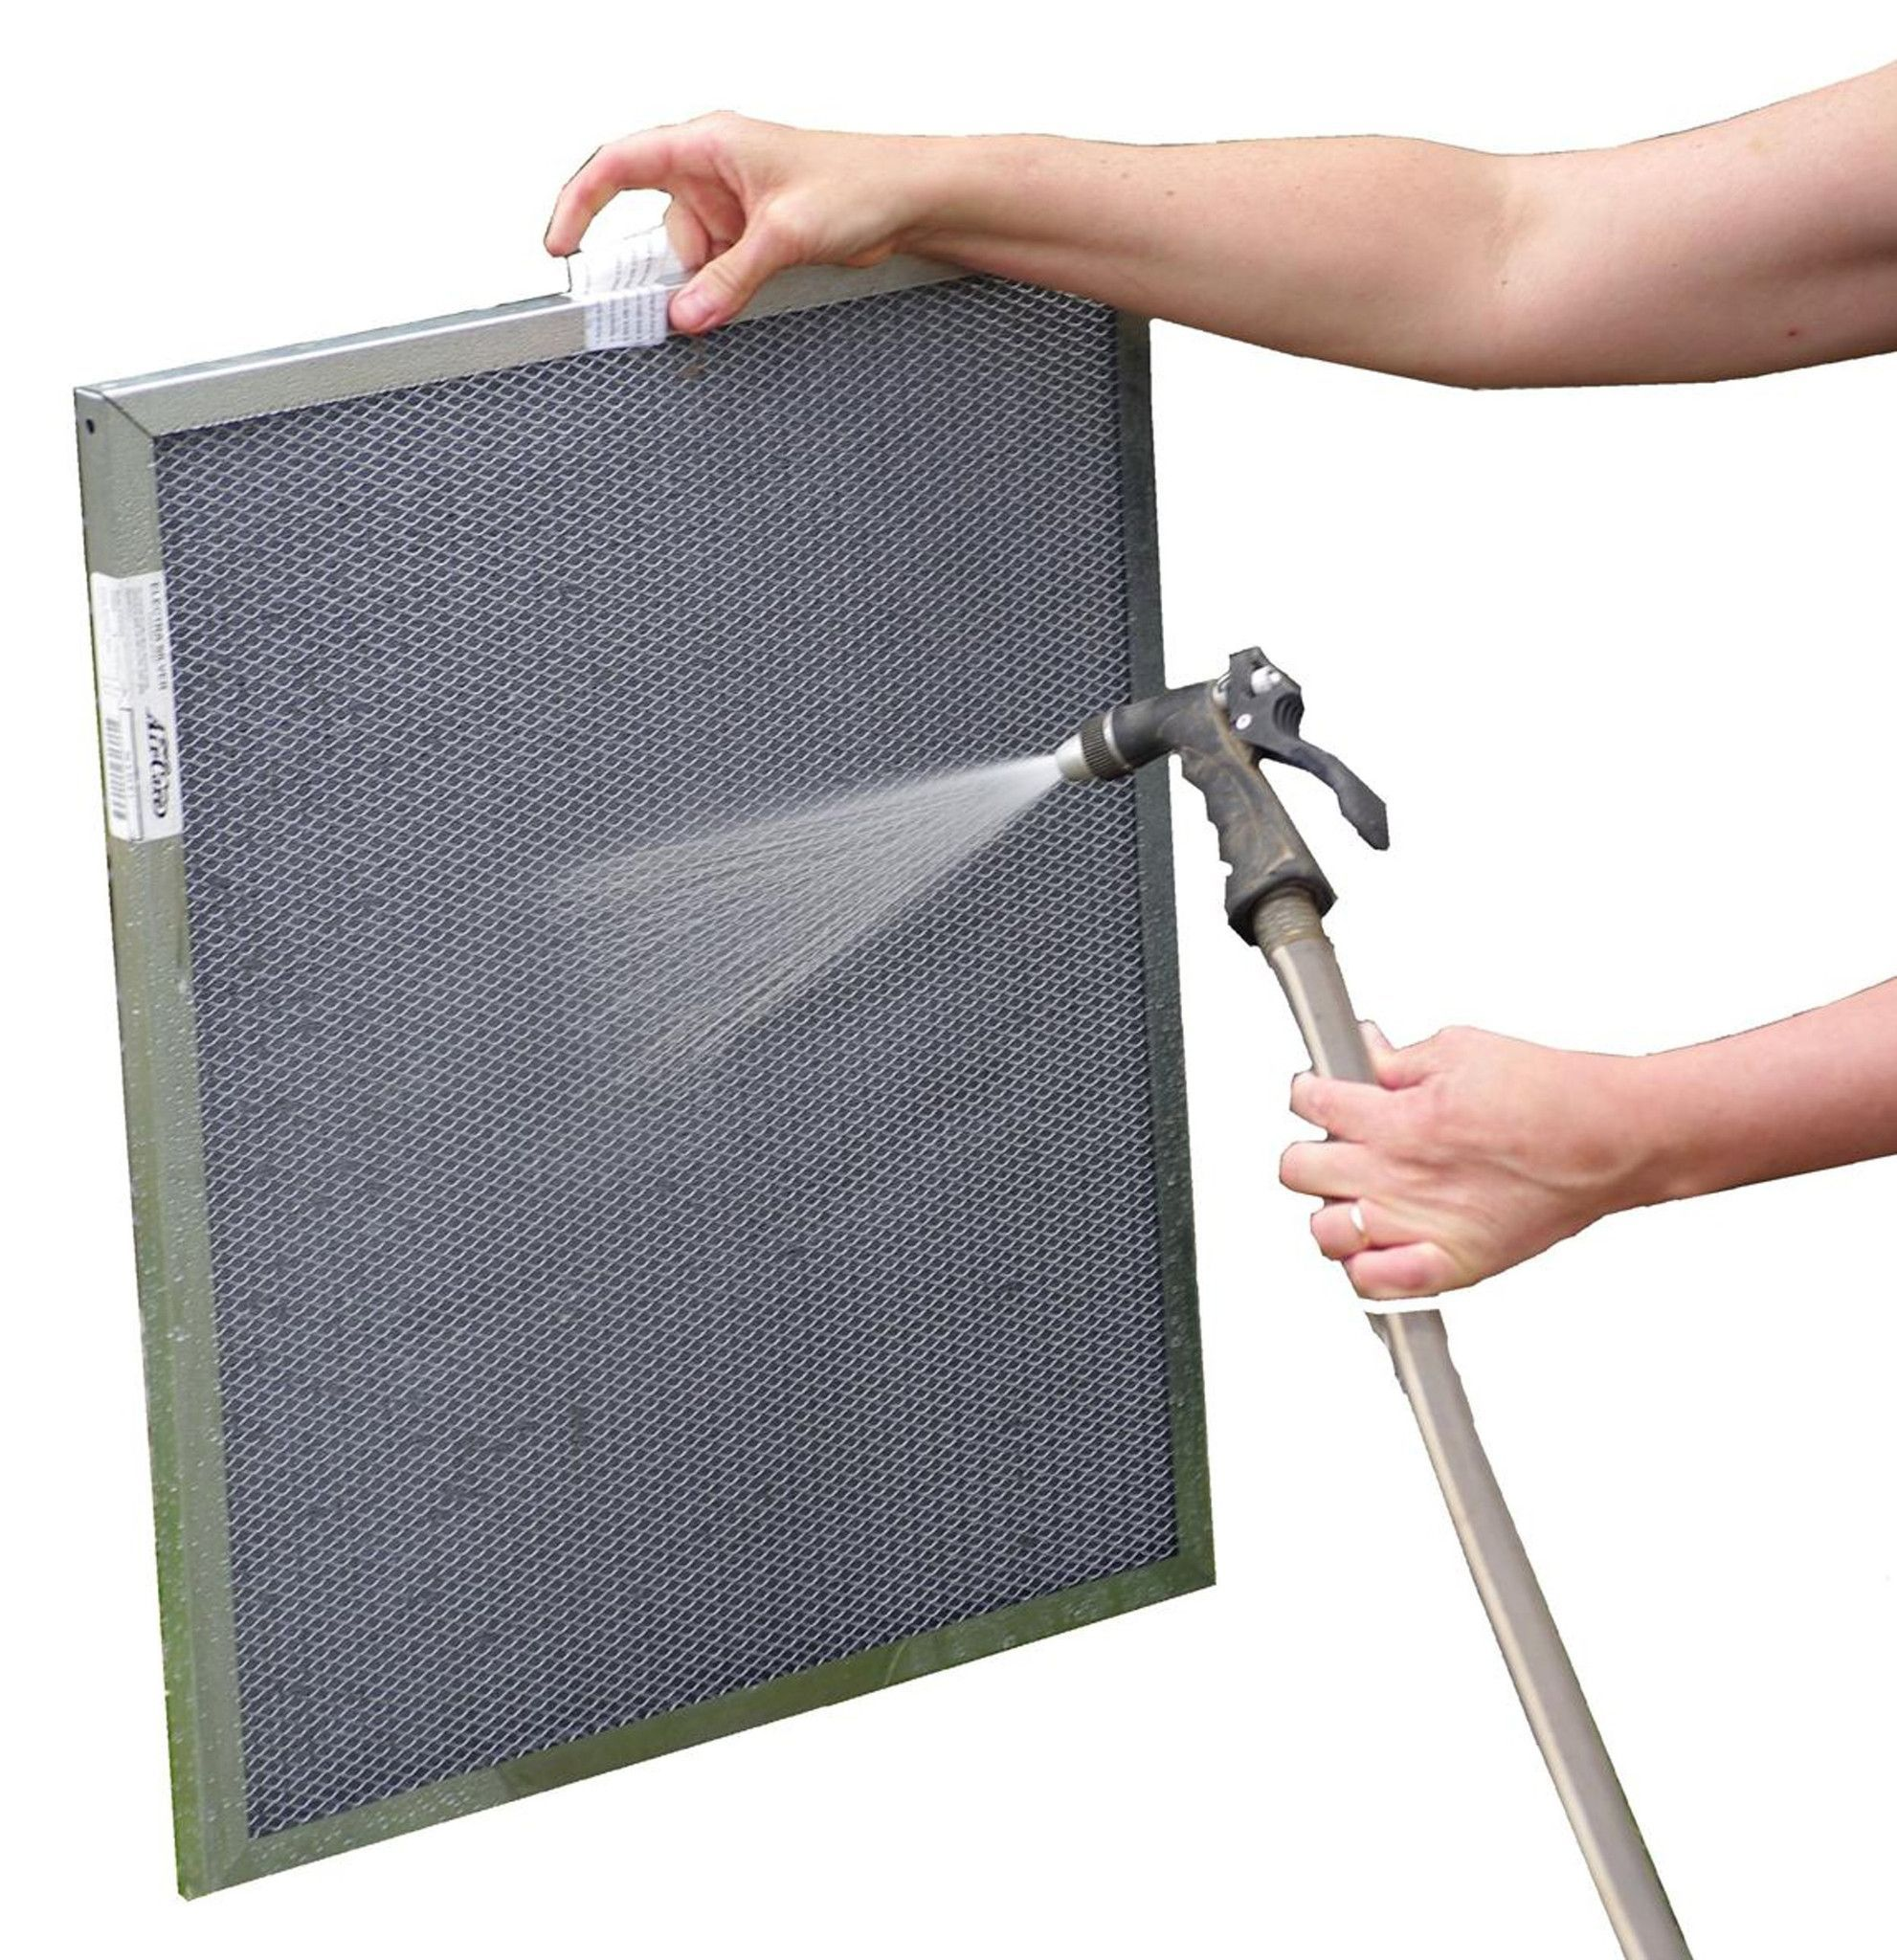 The ULTIMATE Furnace A/C Filter! Washable, Permanent